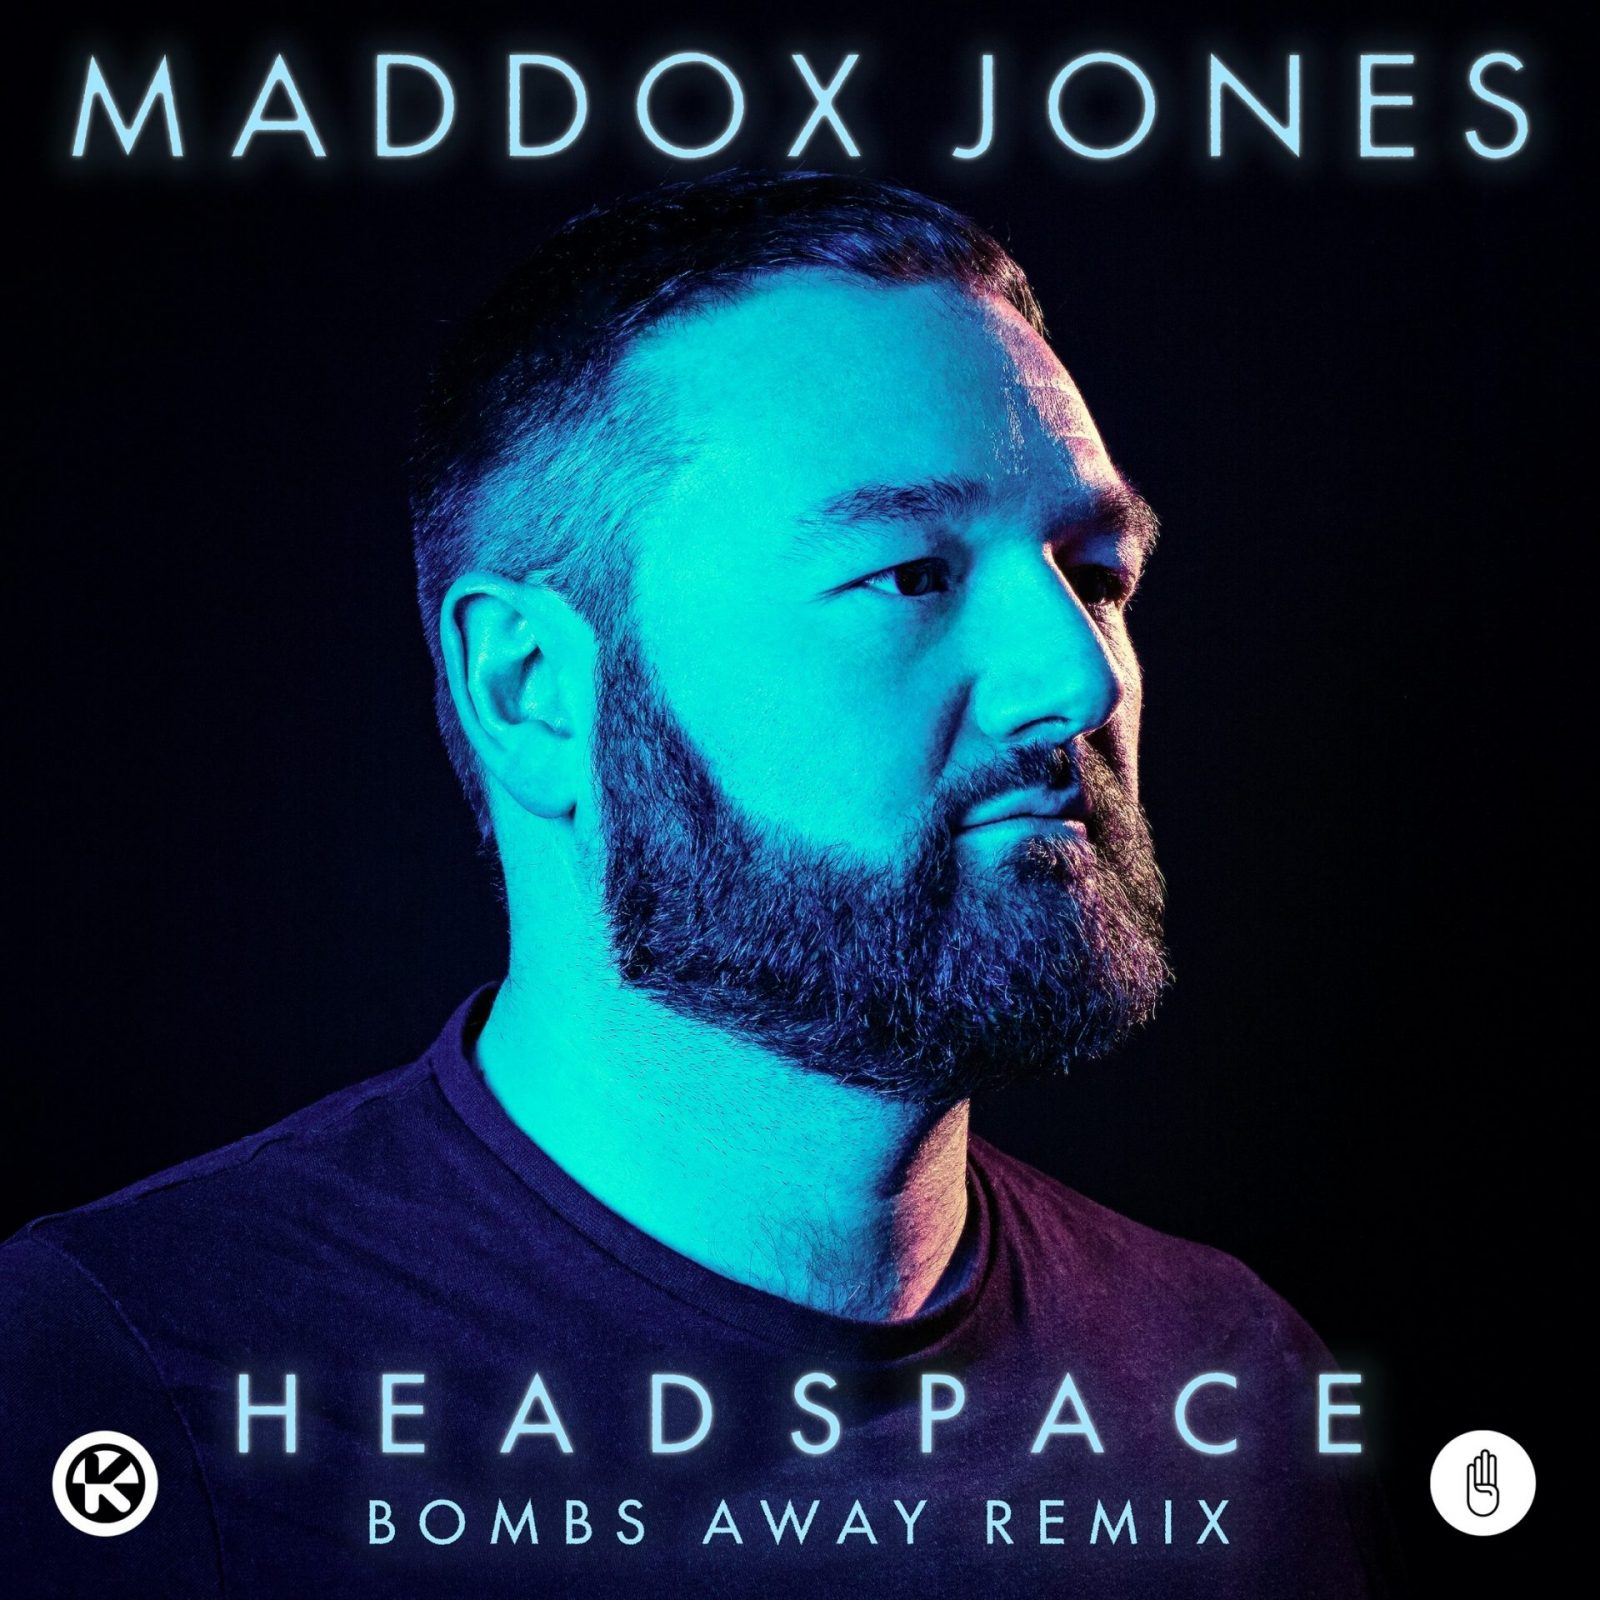 Maddox Jones – Headspace